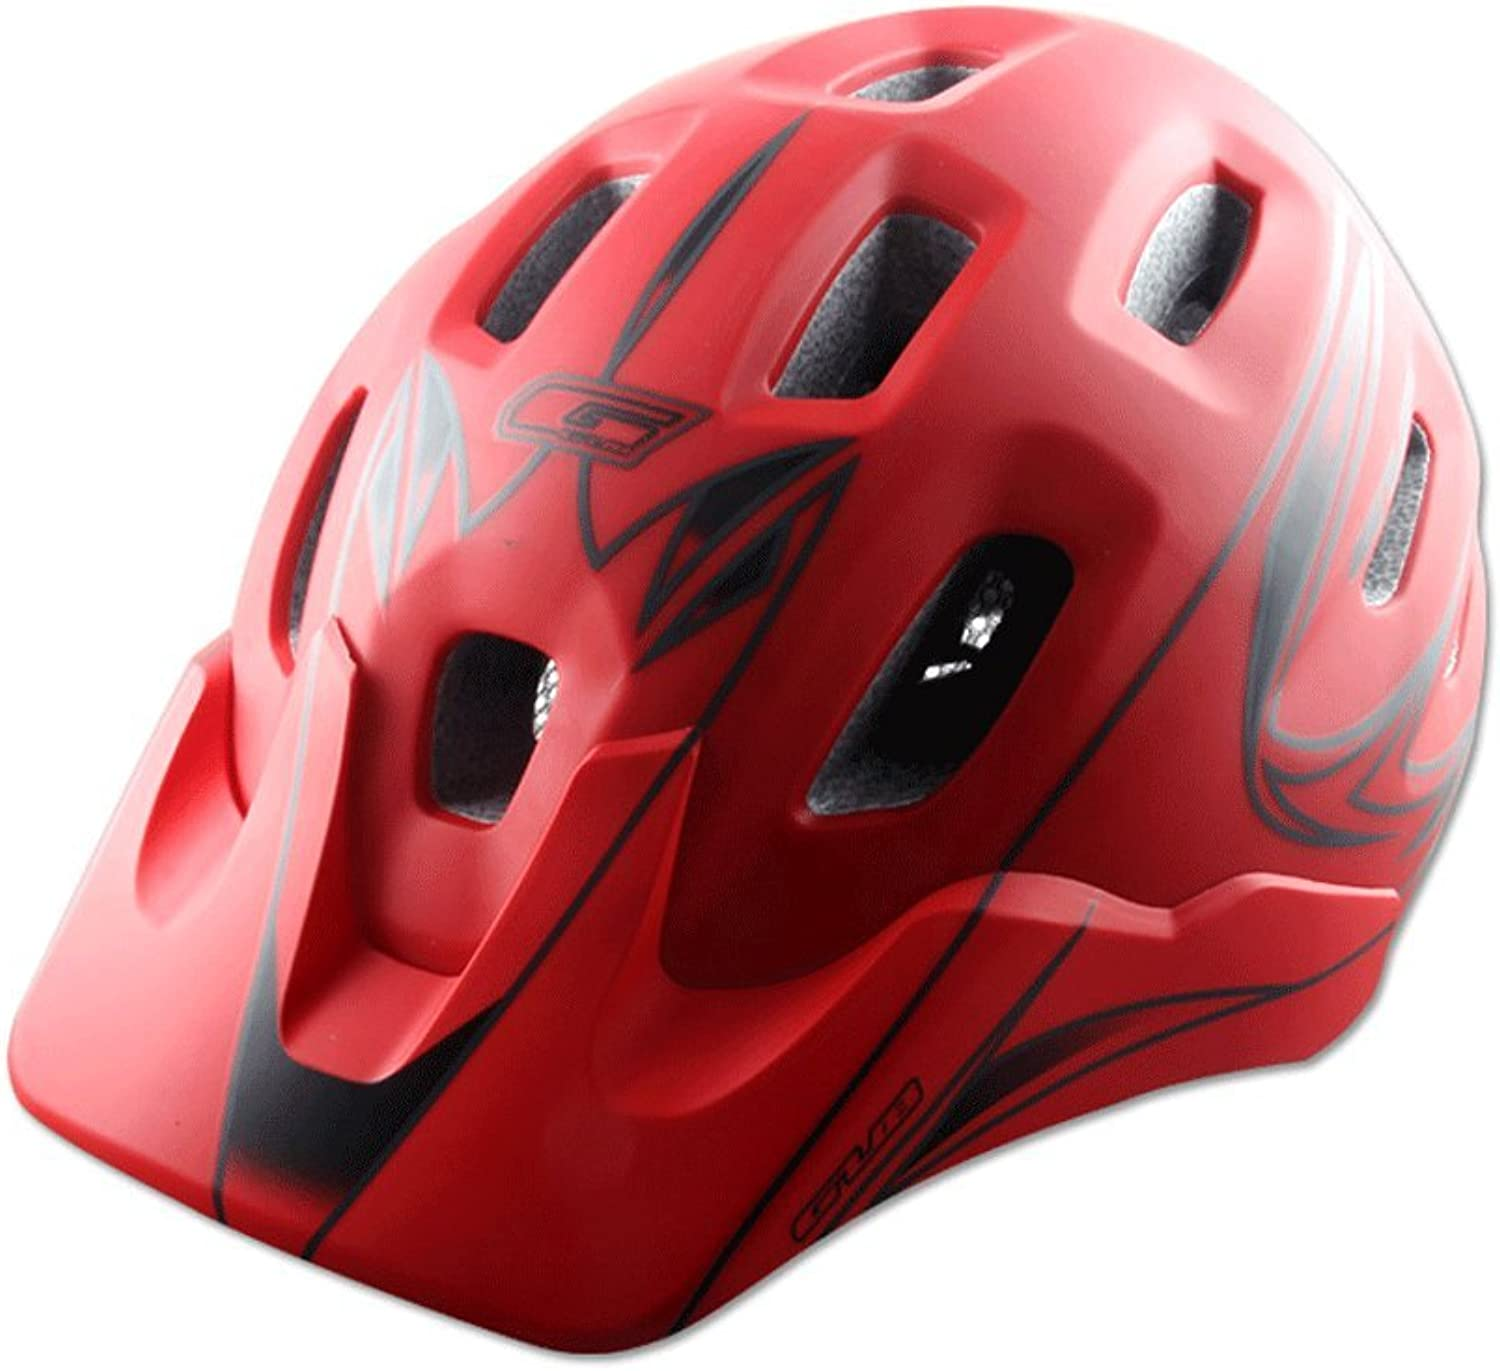 Bicycle Helmet, EPS and PC Materials Integral Forming Equipment A Mountain Country Highway Men and Women 18 Air Hole Super Light Ventilation Security Comfortable